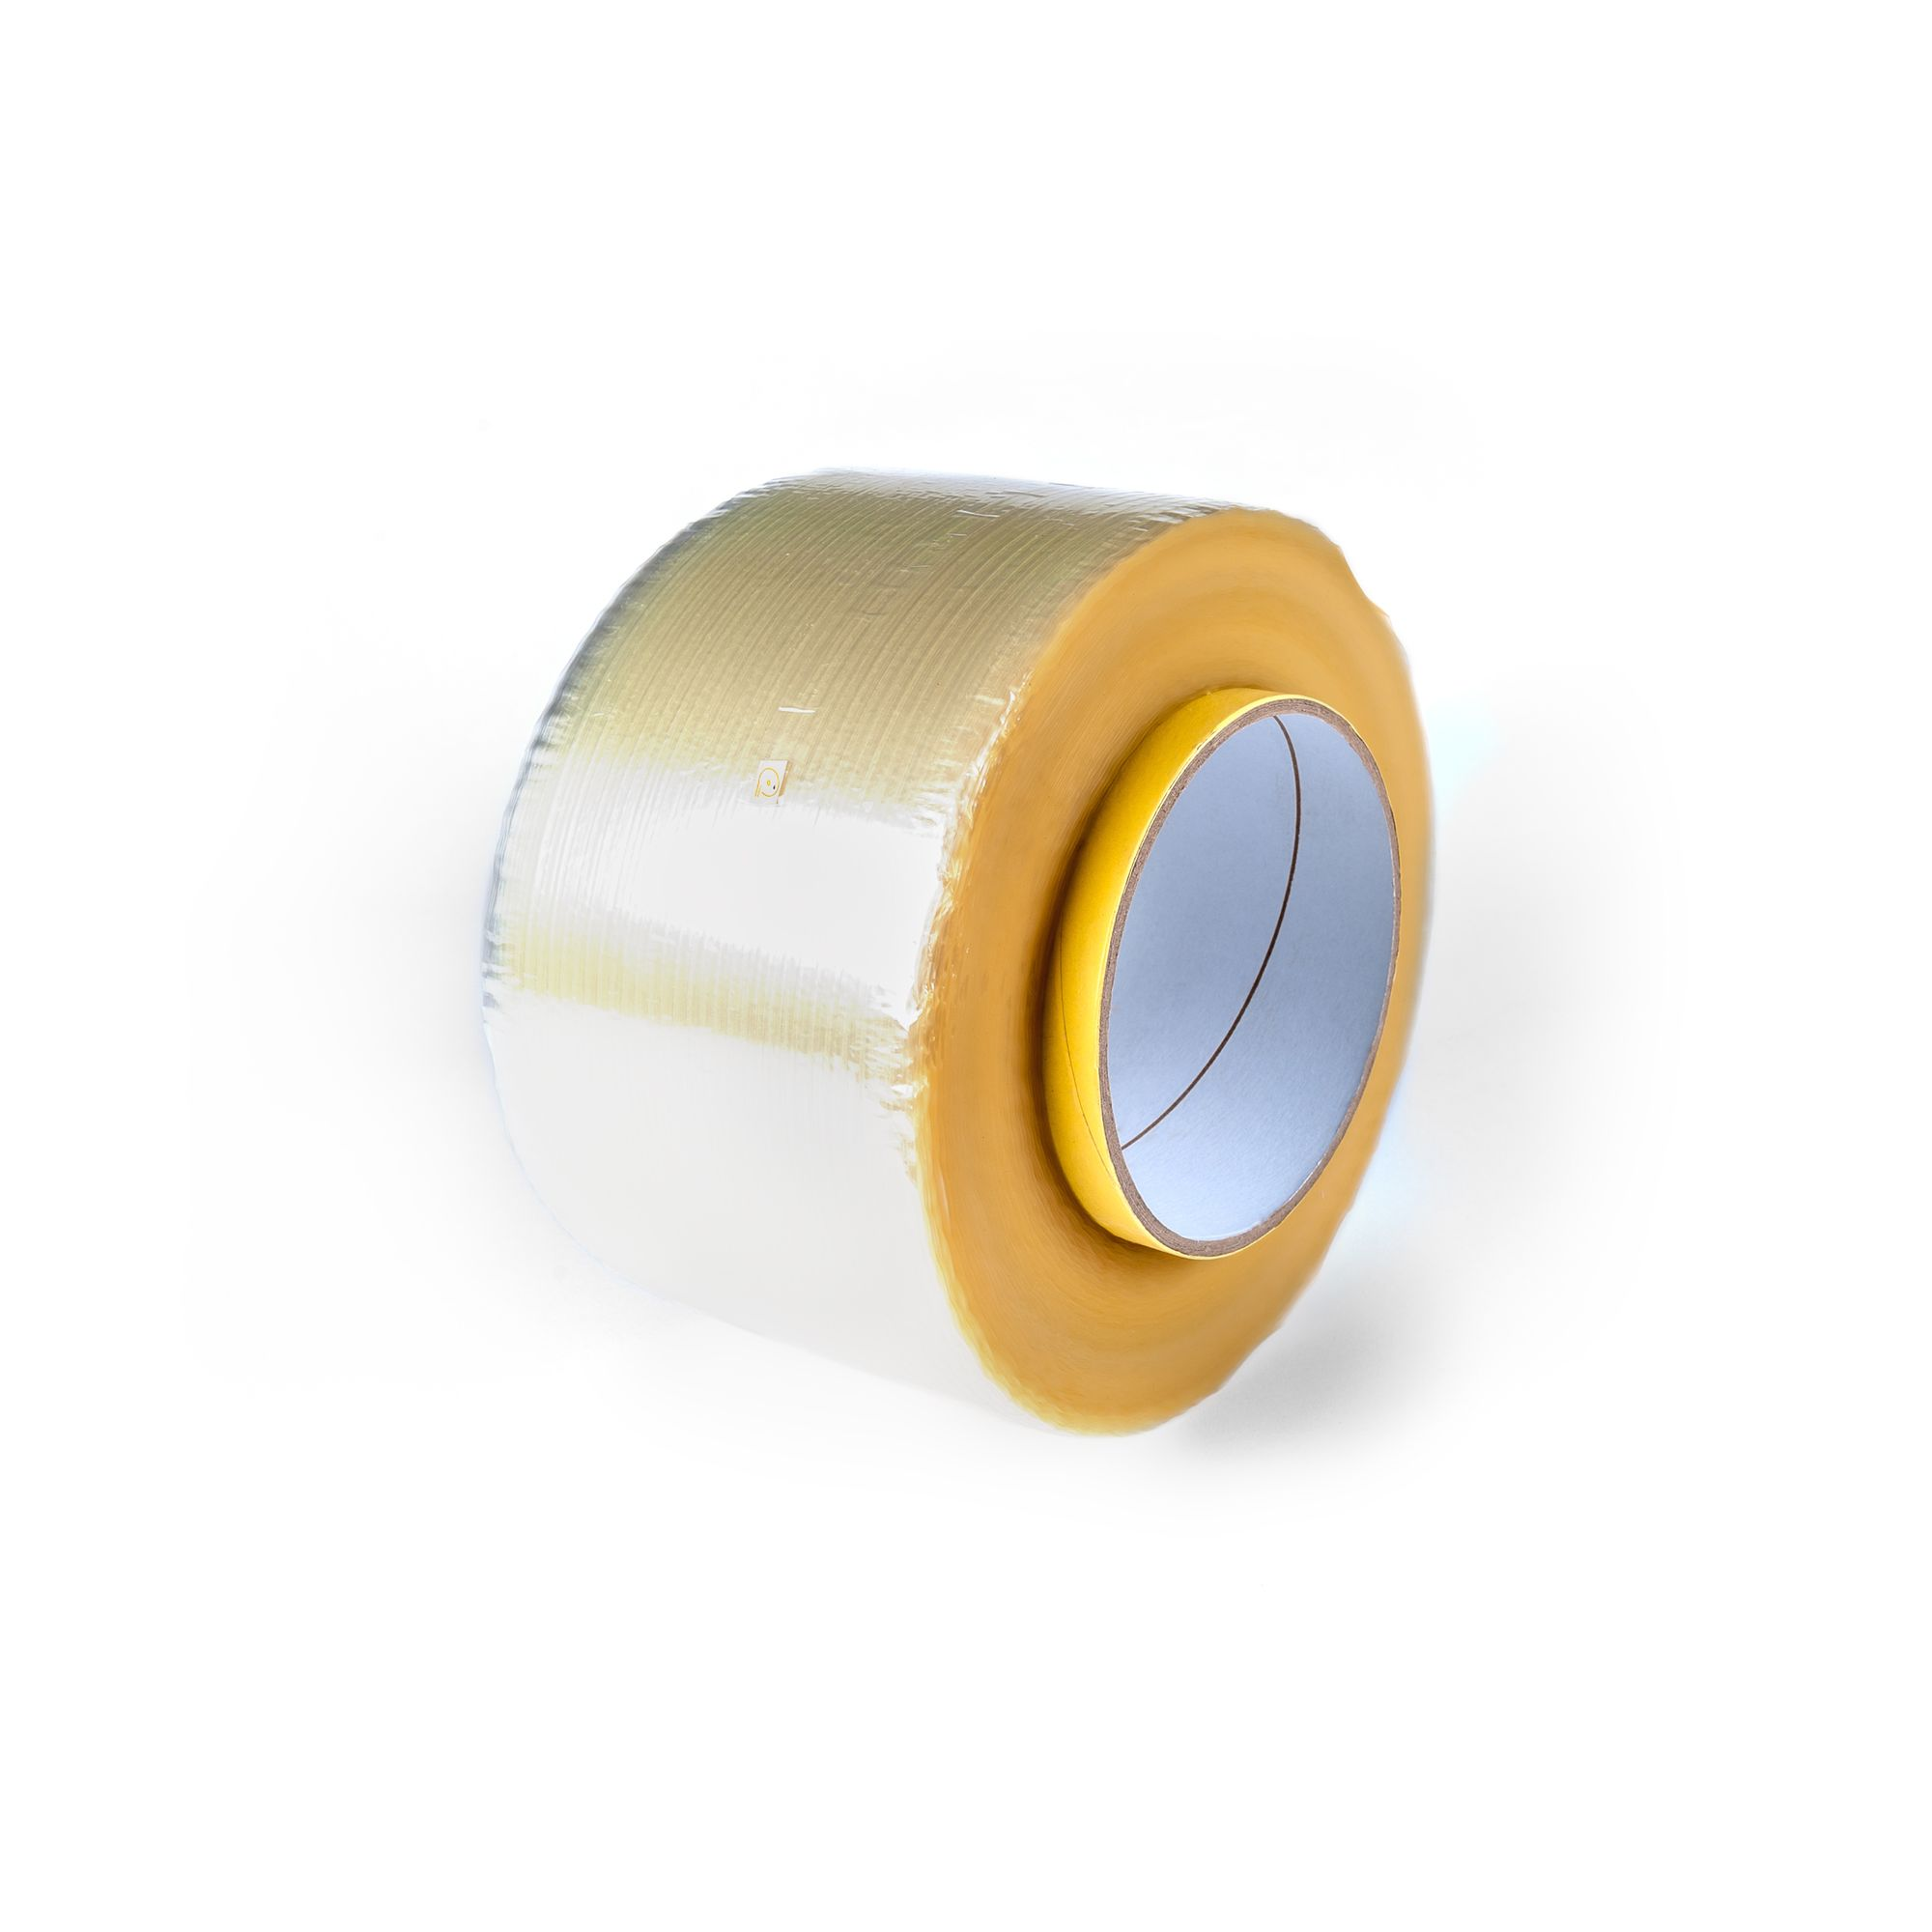 The security tape company – Tamper evident – Founded in 2004 and formed by professionals with over 40 years experience in innovation & technical development